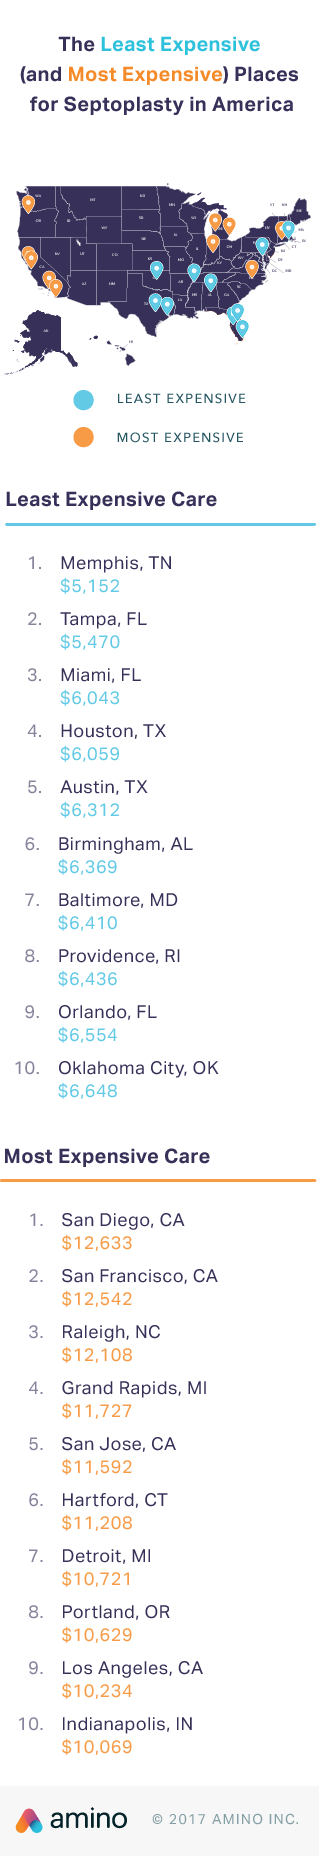 The 10 least expensive metro areas for a septoplasty